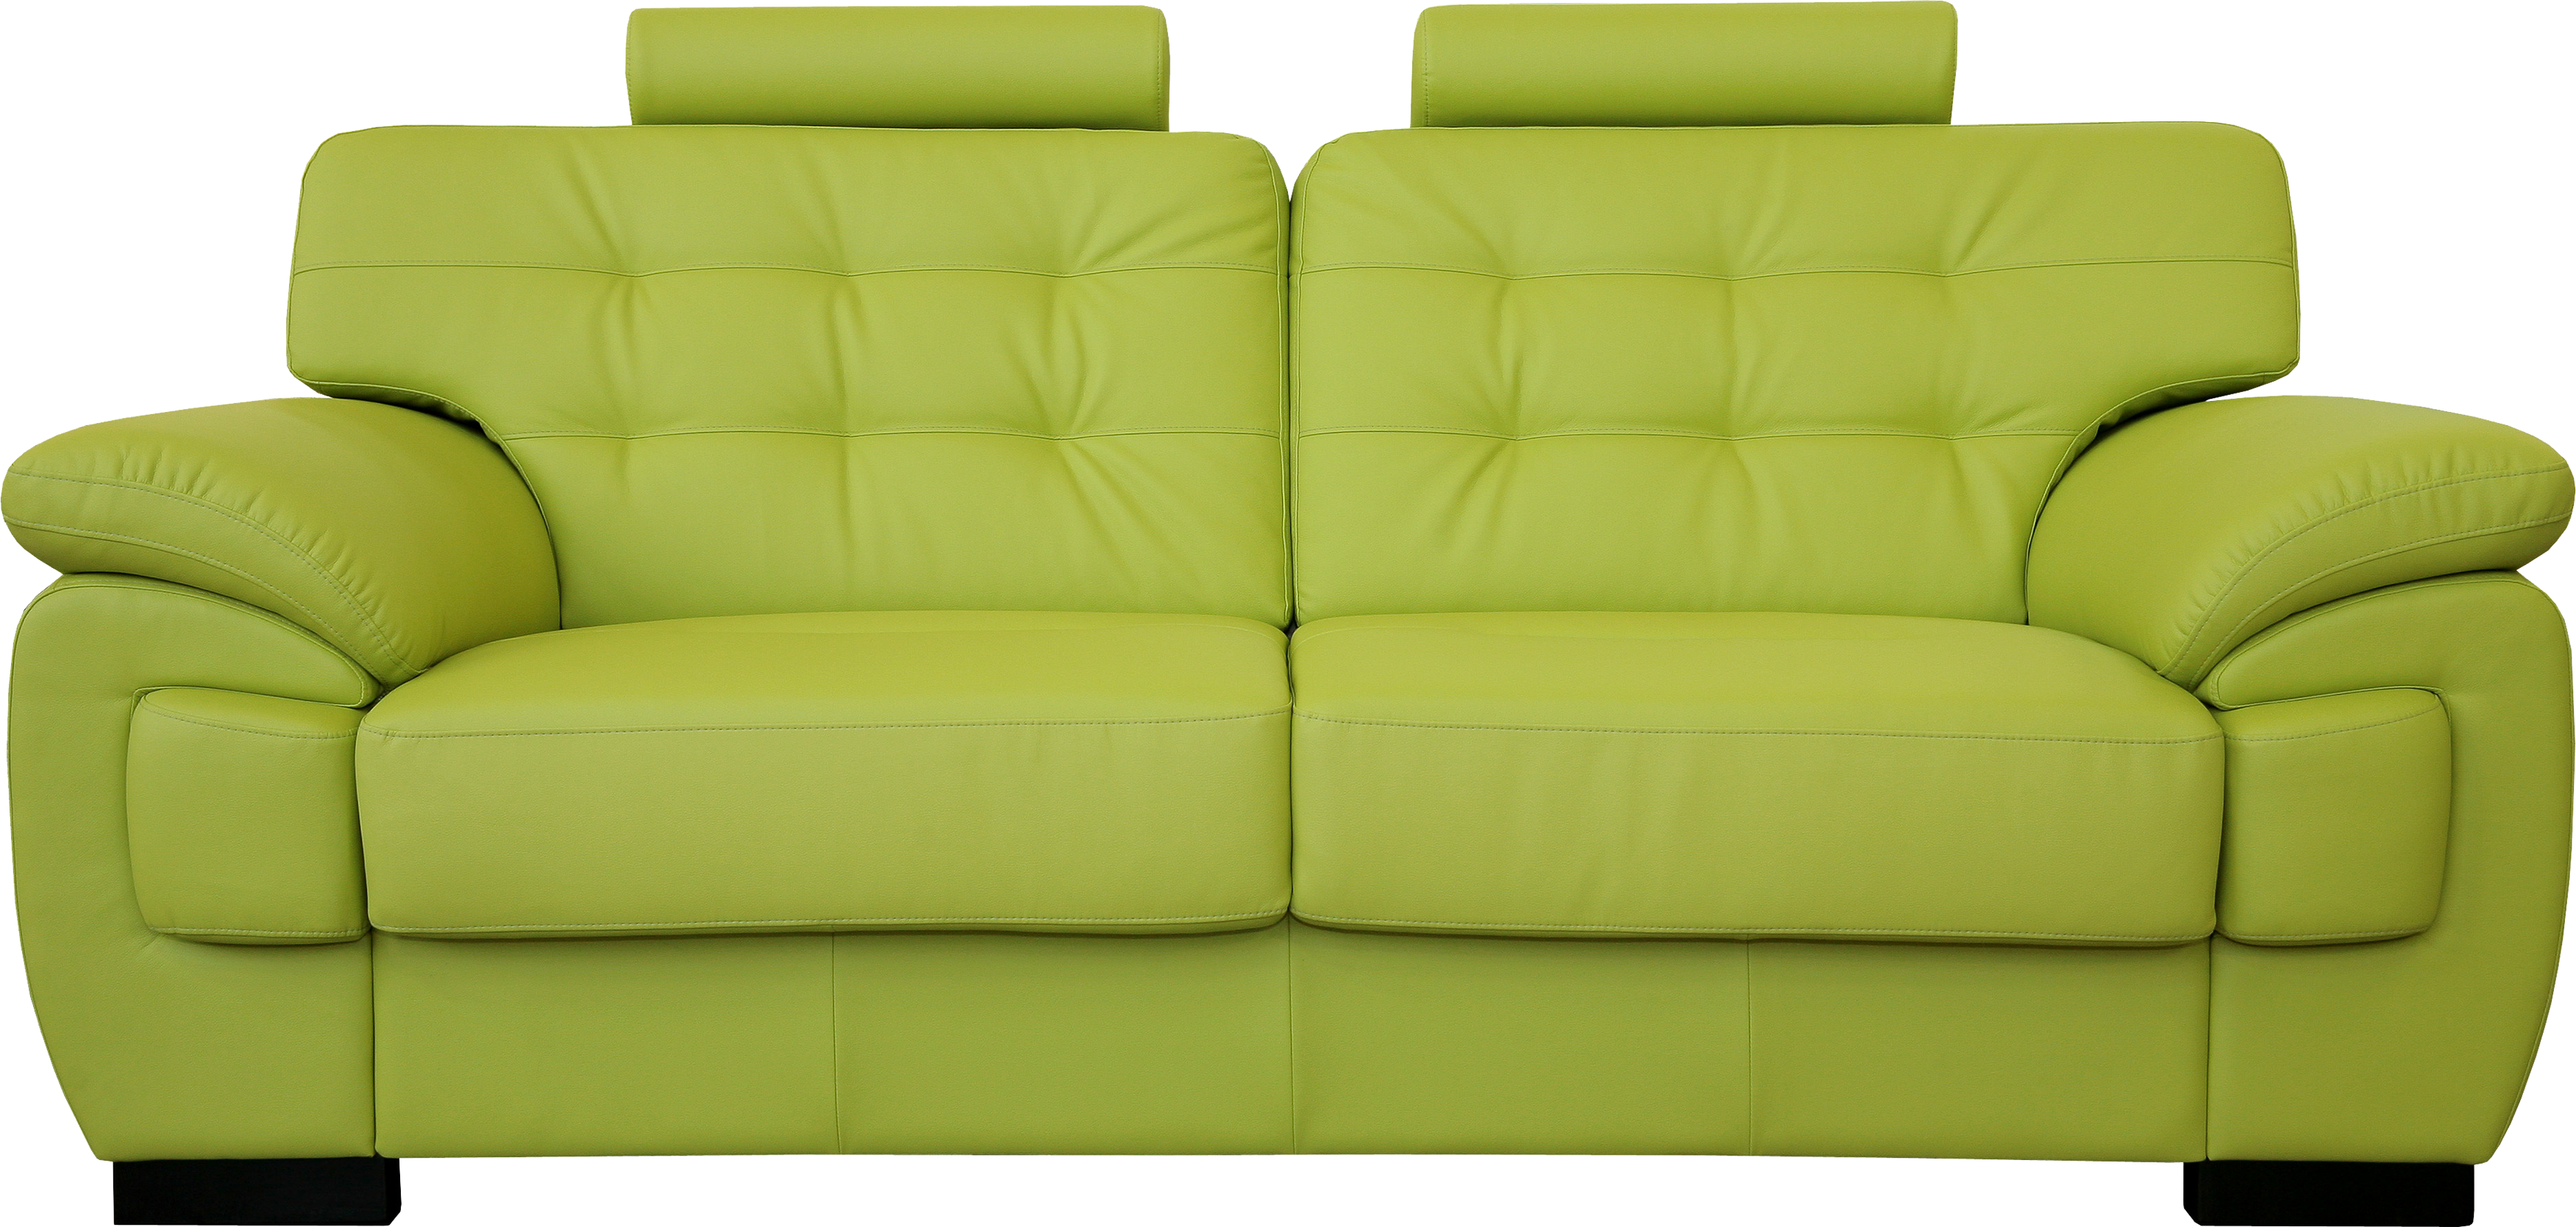 Furniture clipart single couch. Png hd of a